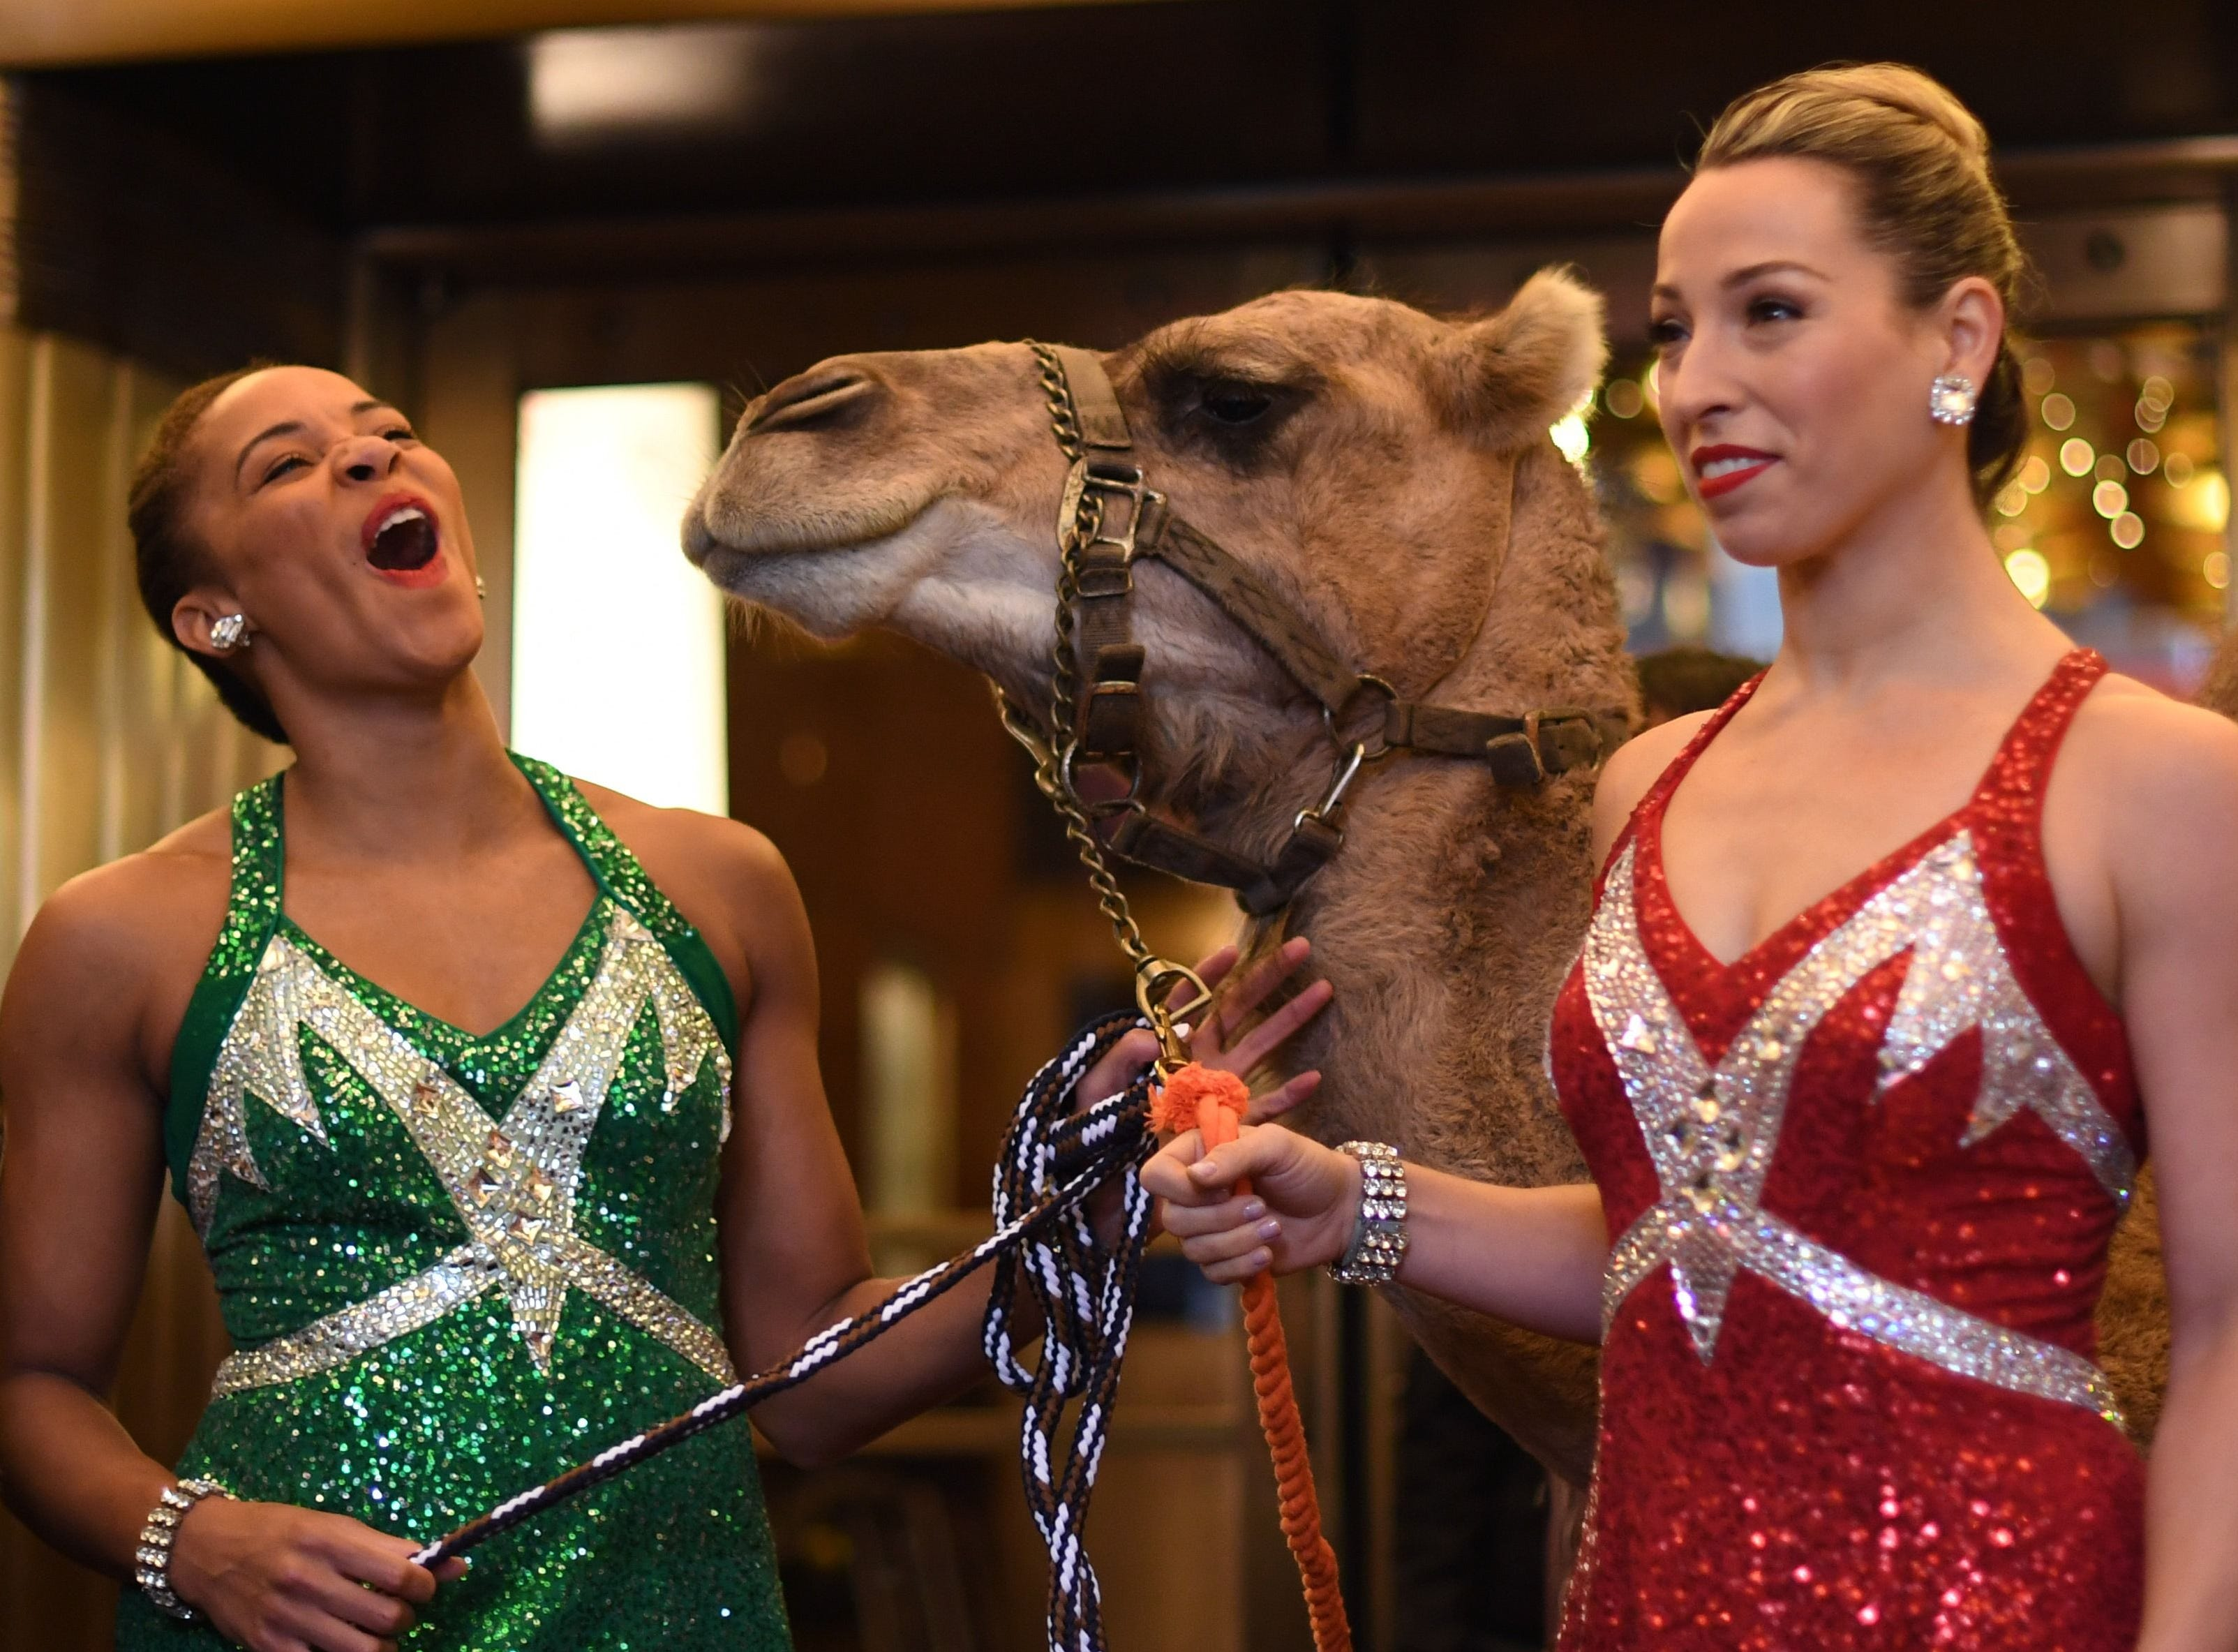 Radio City Rockettes Samantha Harvey(R) and Kathleen Laituri (L) pose with camels as the Radio City dancers  welcome the camels, sheep and donkey back to Radio City Music Hall November 5, 2018 for their starring role in the Living Nativity scene in the 2018 production of the Christmas Spectacular Starring the Radio City Rockettes. (Photo by TIMOTHY A. CLARY / AFP)TIMOTHY A. CLARY/AFP/Getty Images